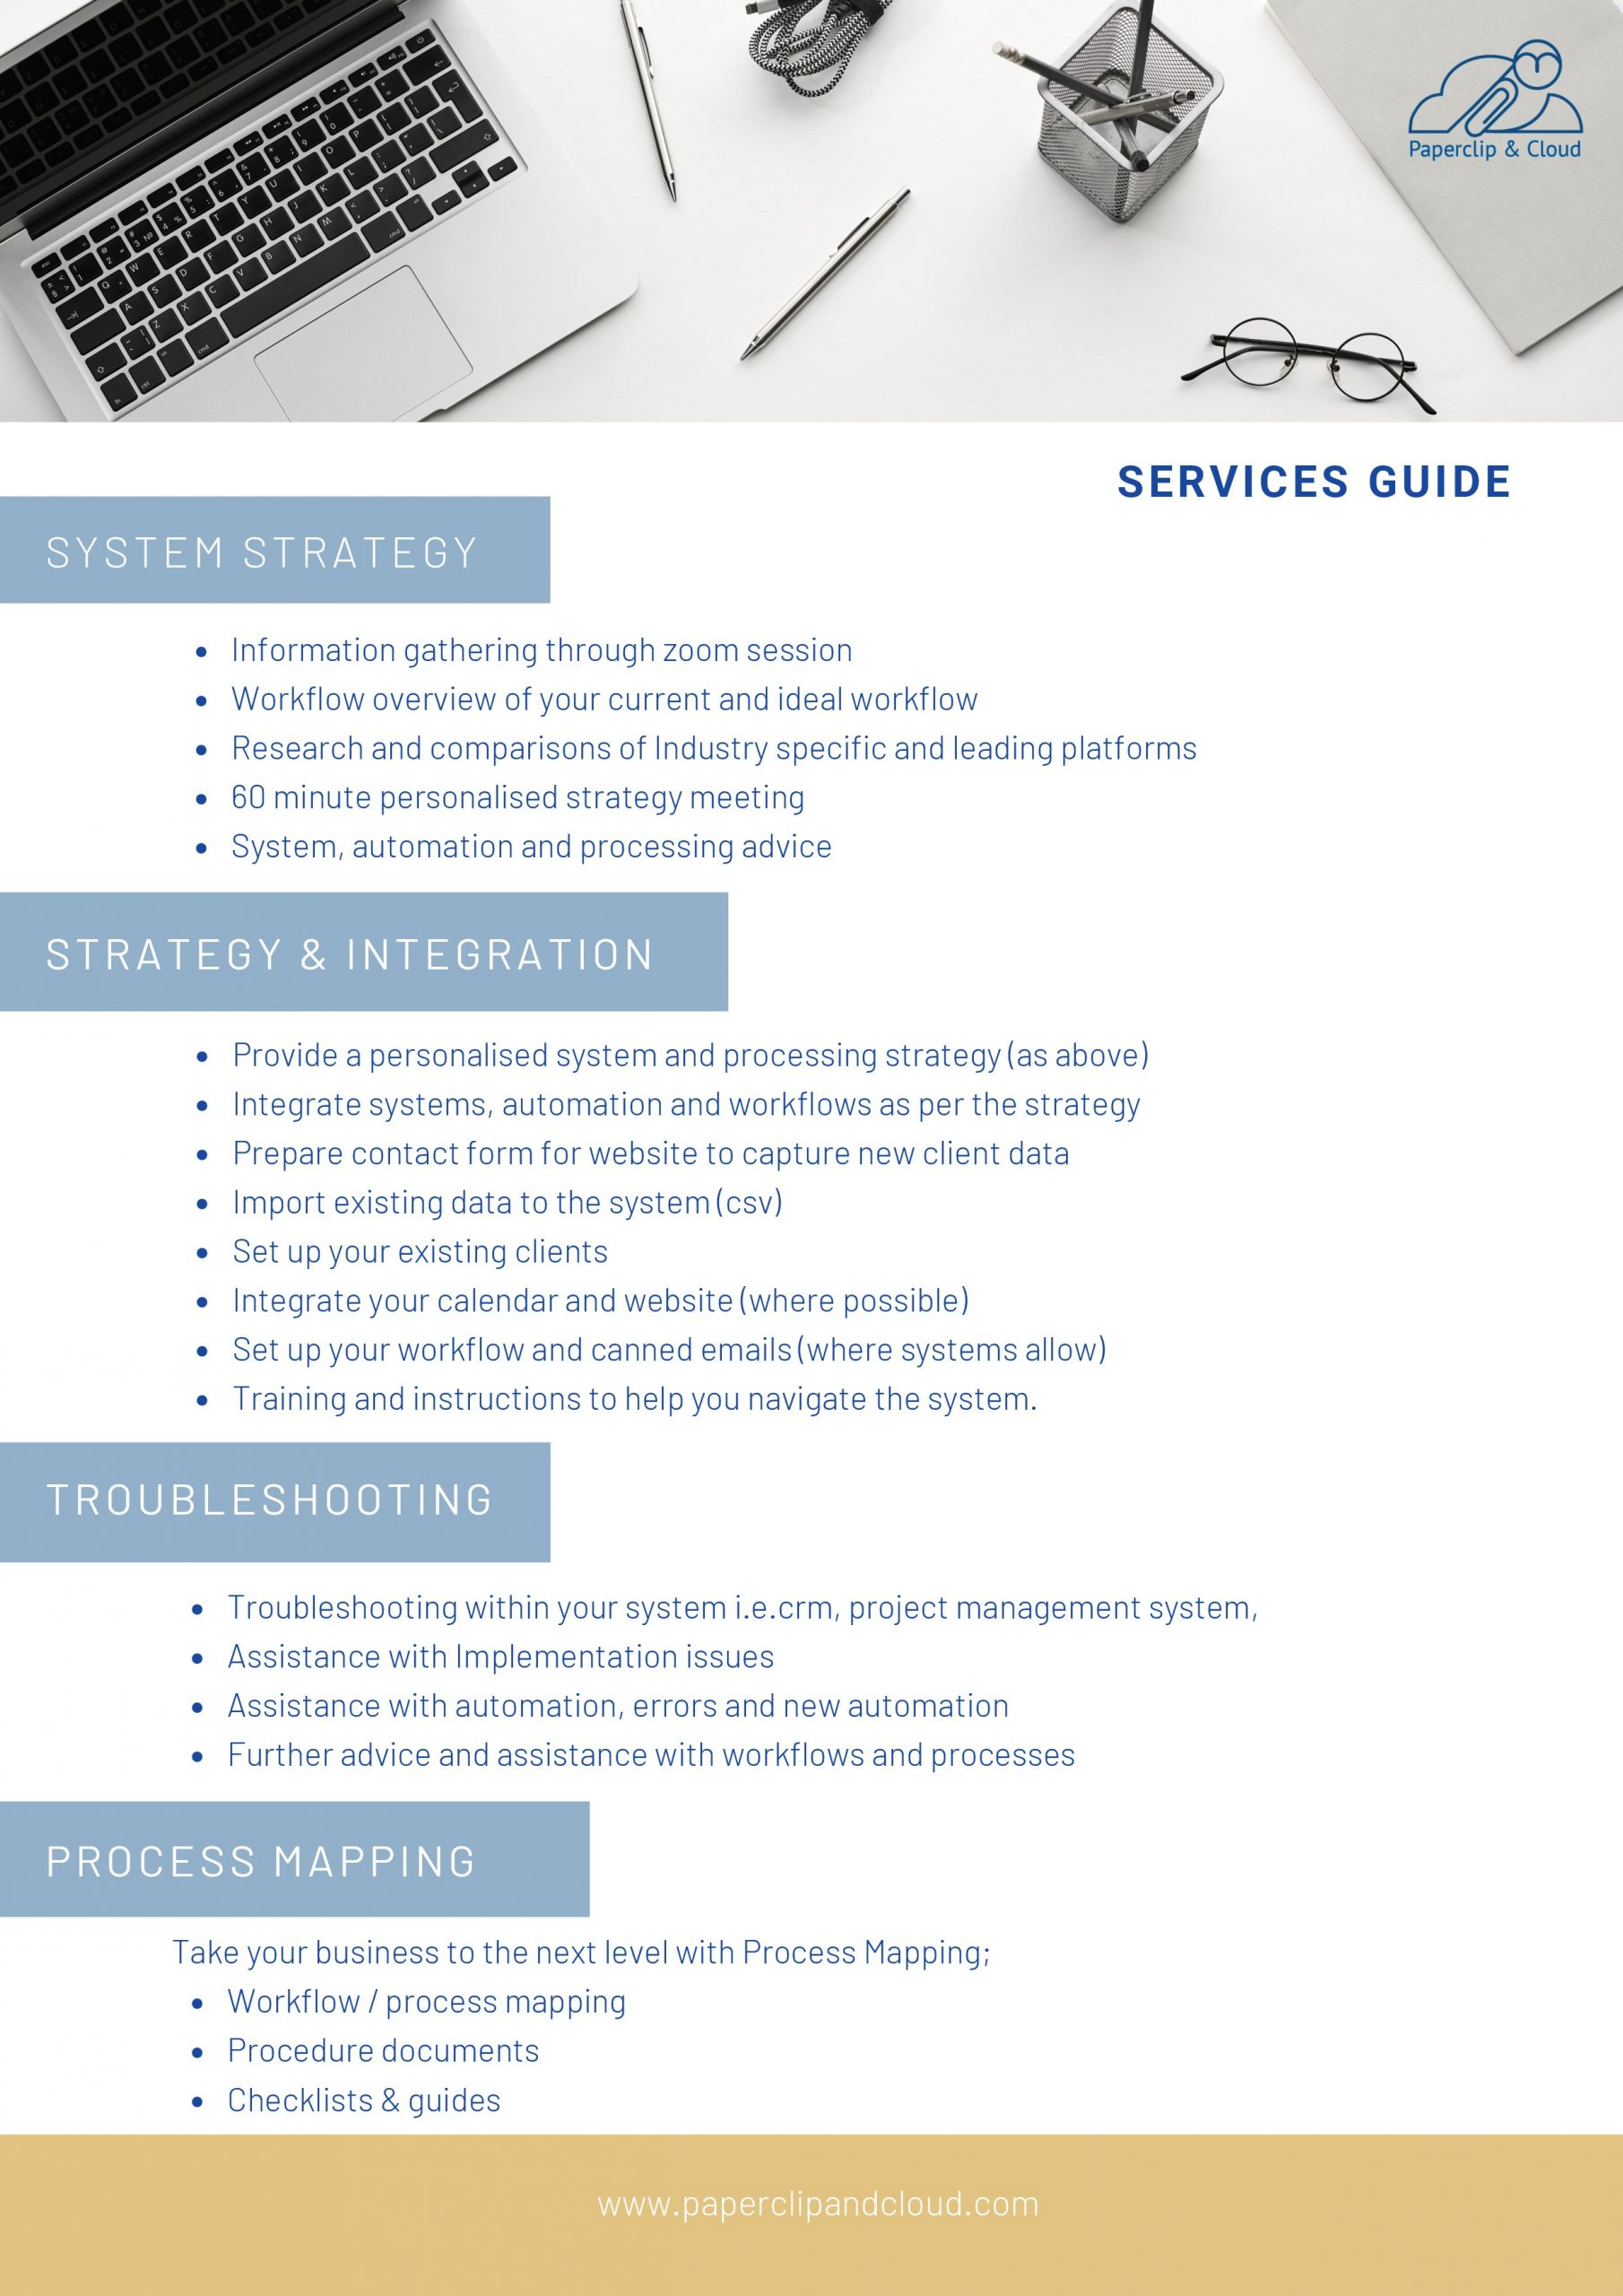 List of all of the services provided by paperclip and cloud and what they cover.